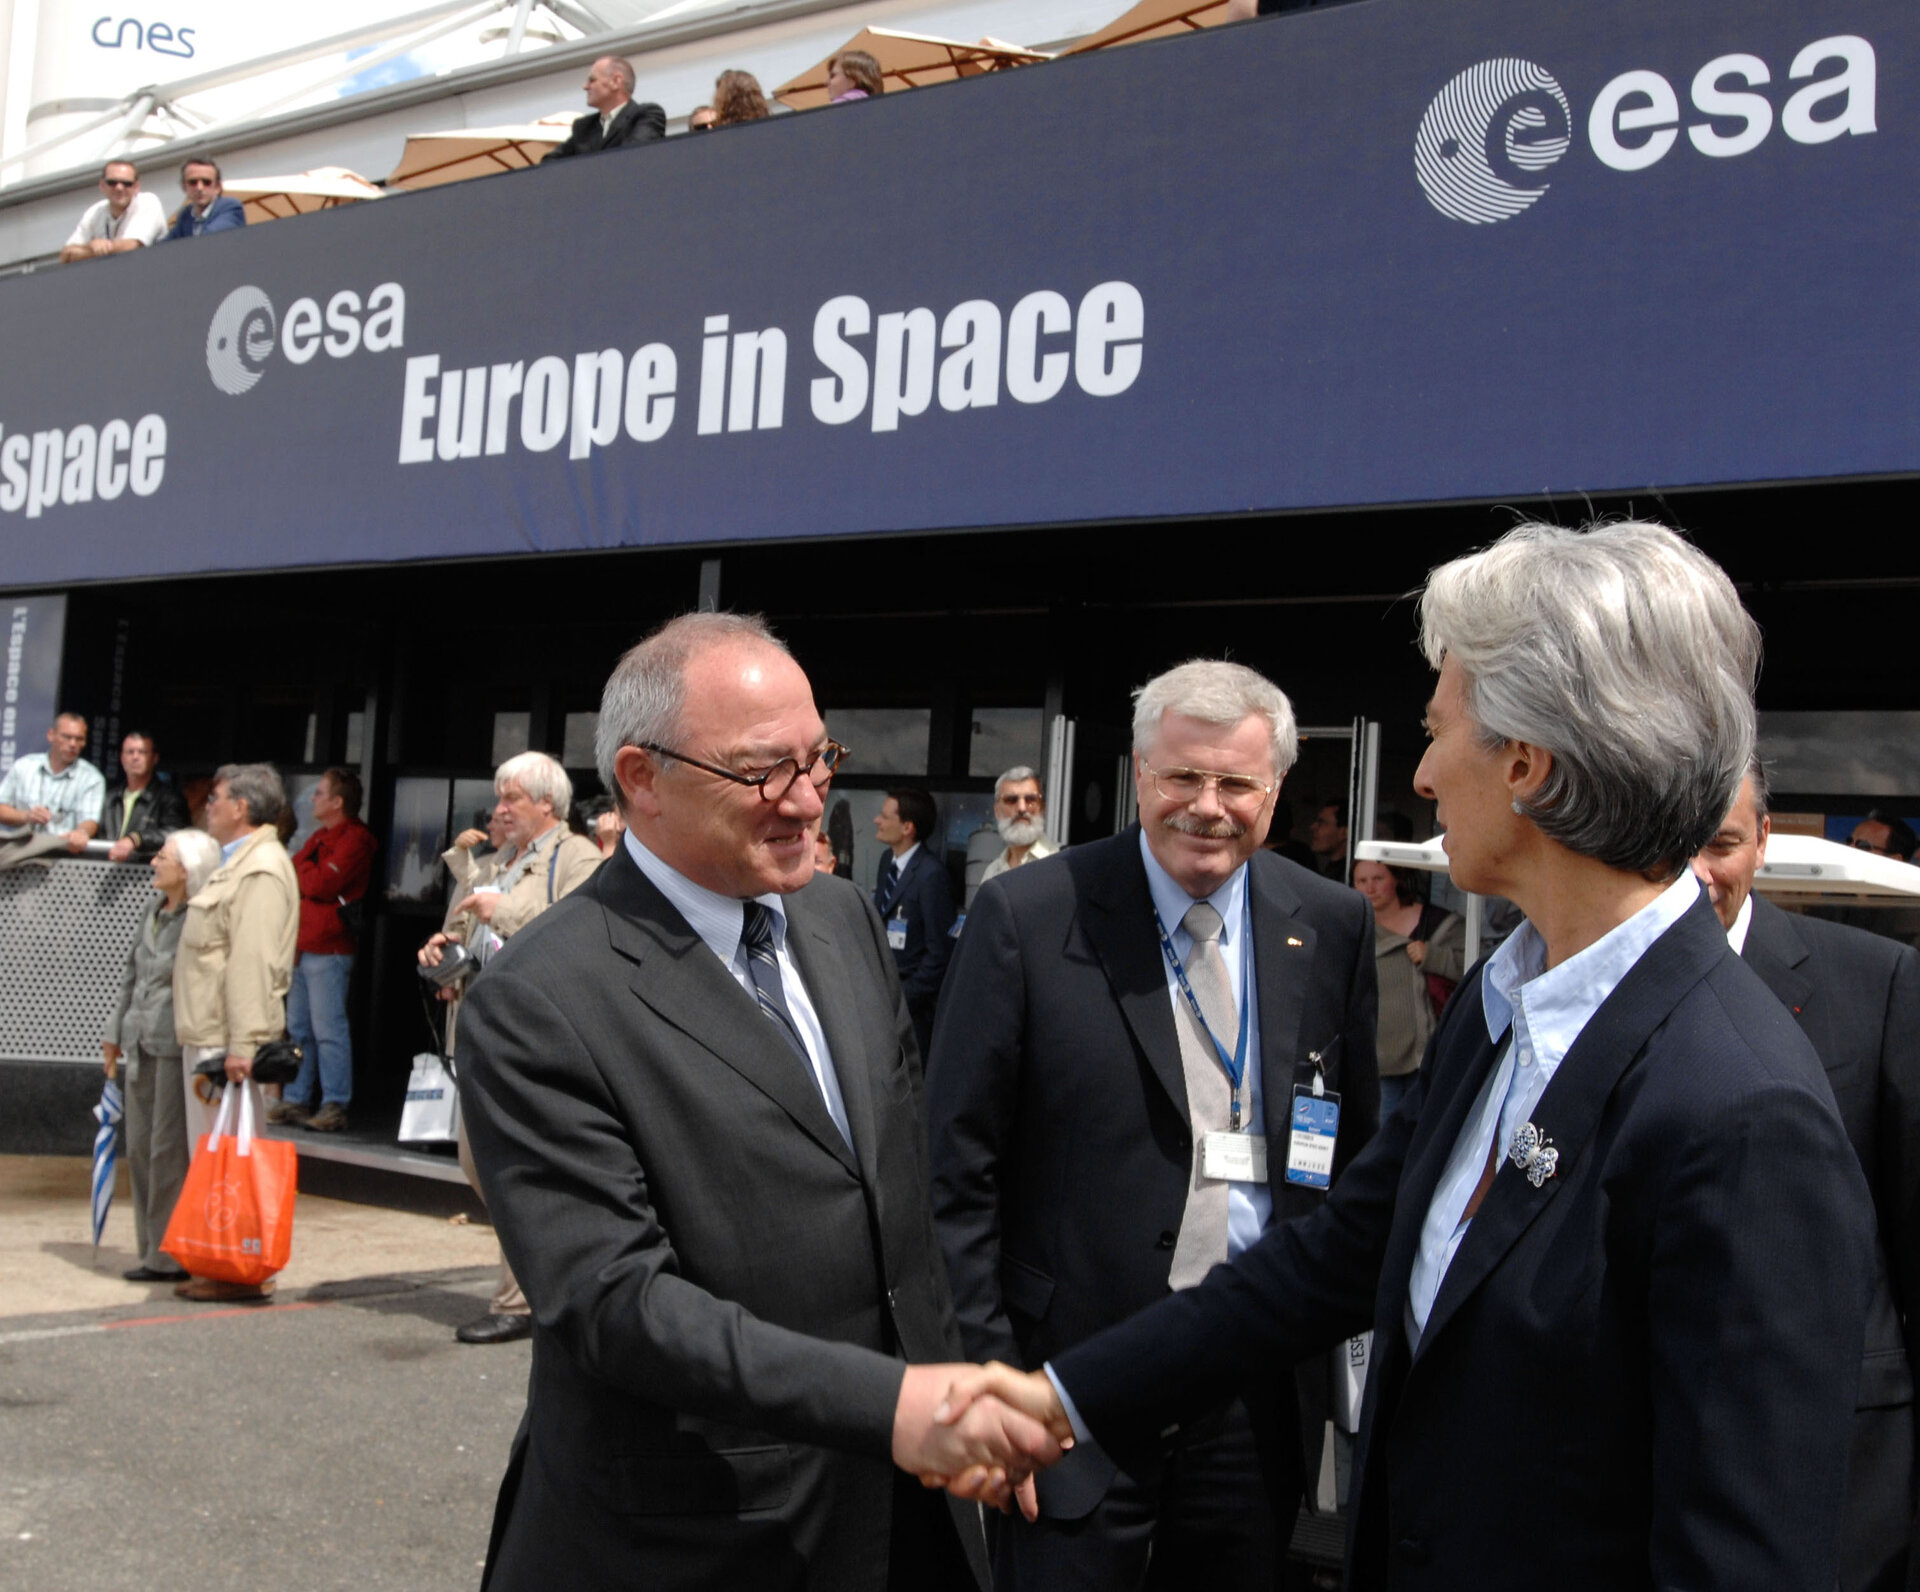 Mr. Dordain, ESA Director General welcomes Mrs Lagarde, French Minister of Economy and Finance to the ESA pavilion